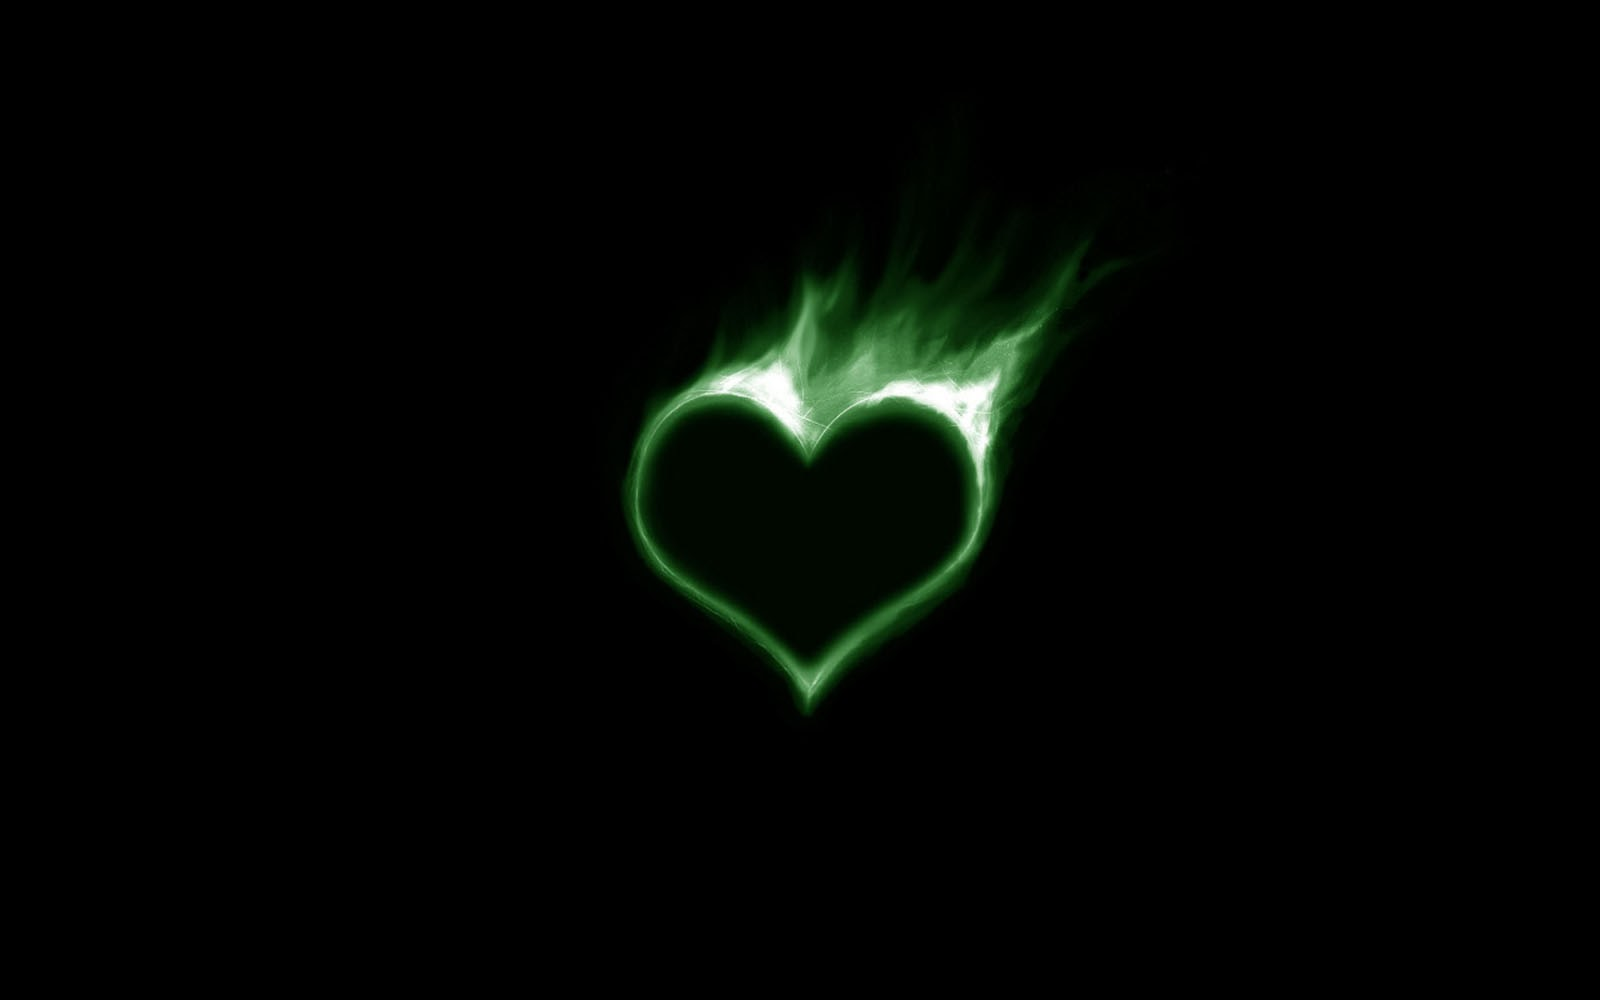 green hearts background - photo #11